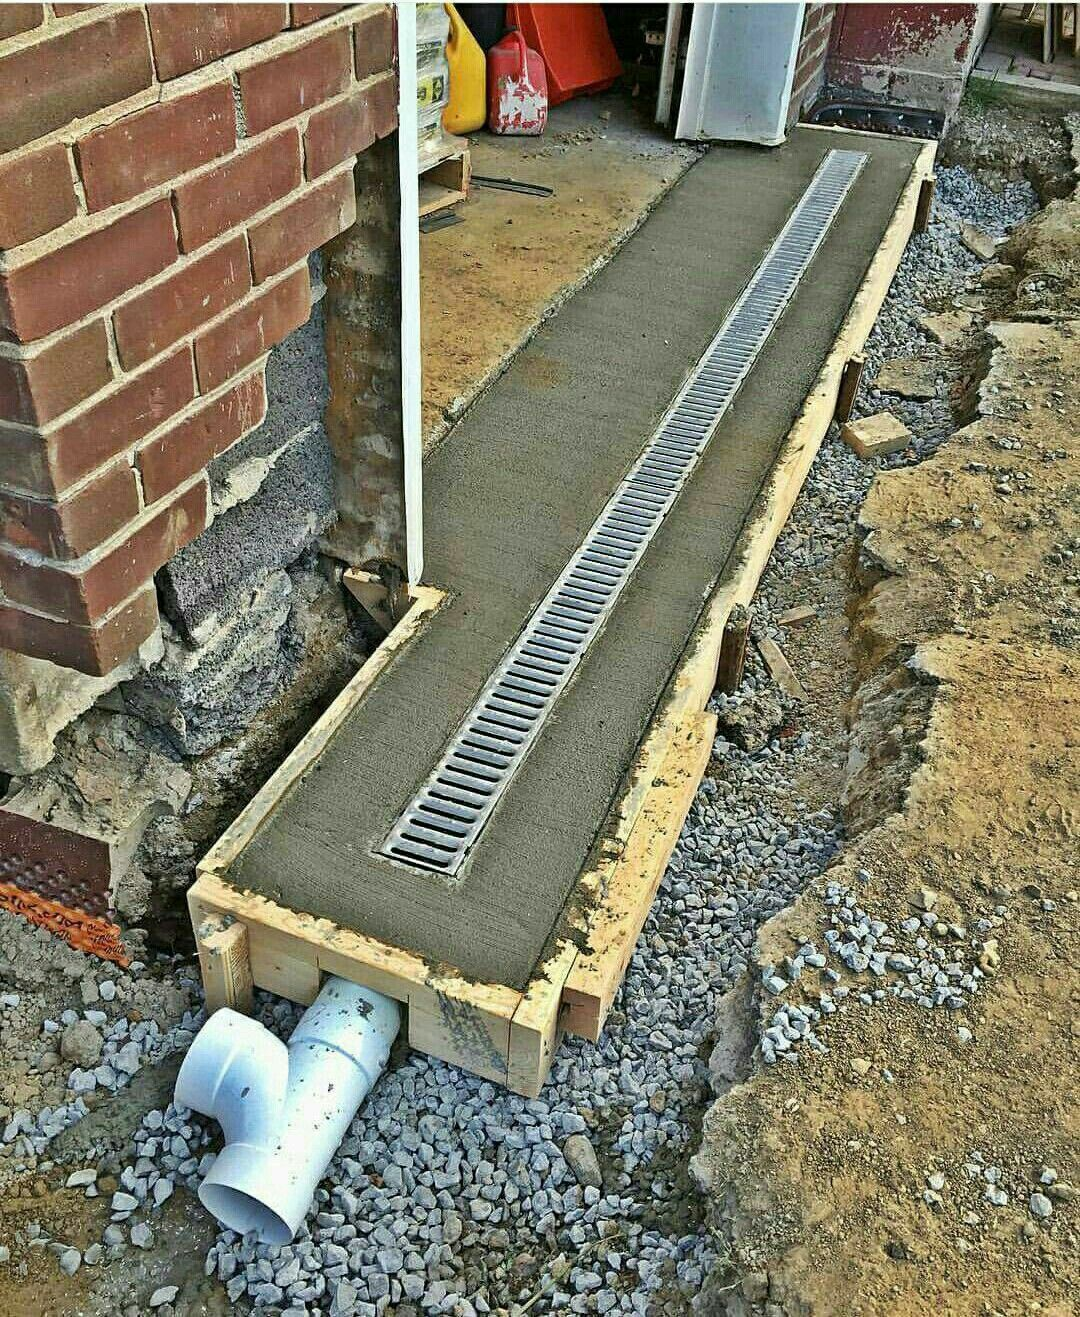 Pin By Jneal On Proyectos Casa In 2020 Landscape Drainage Backyard Landscaping Backyard